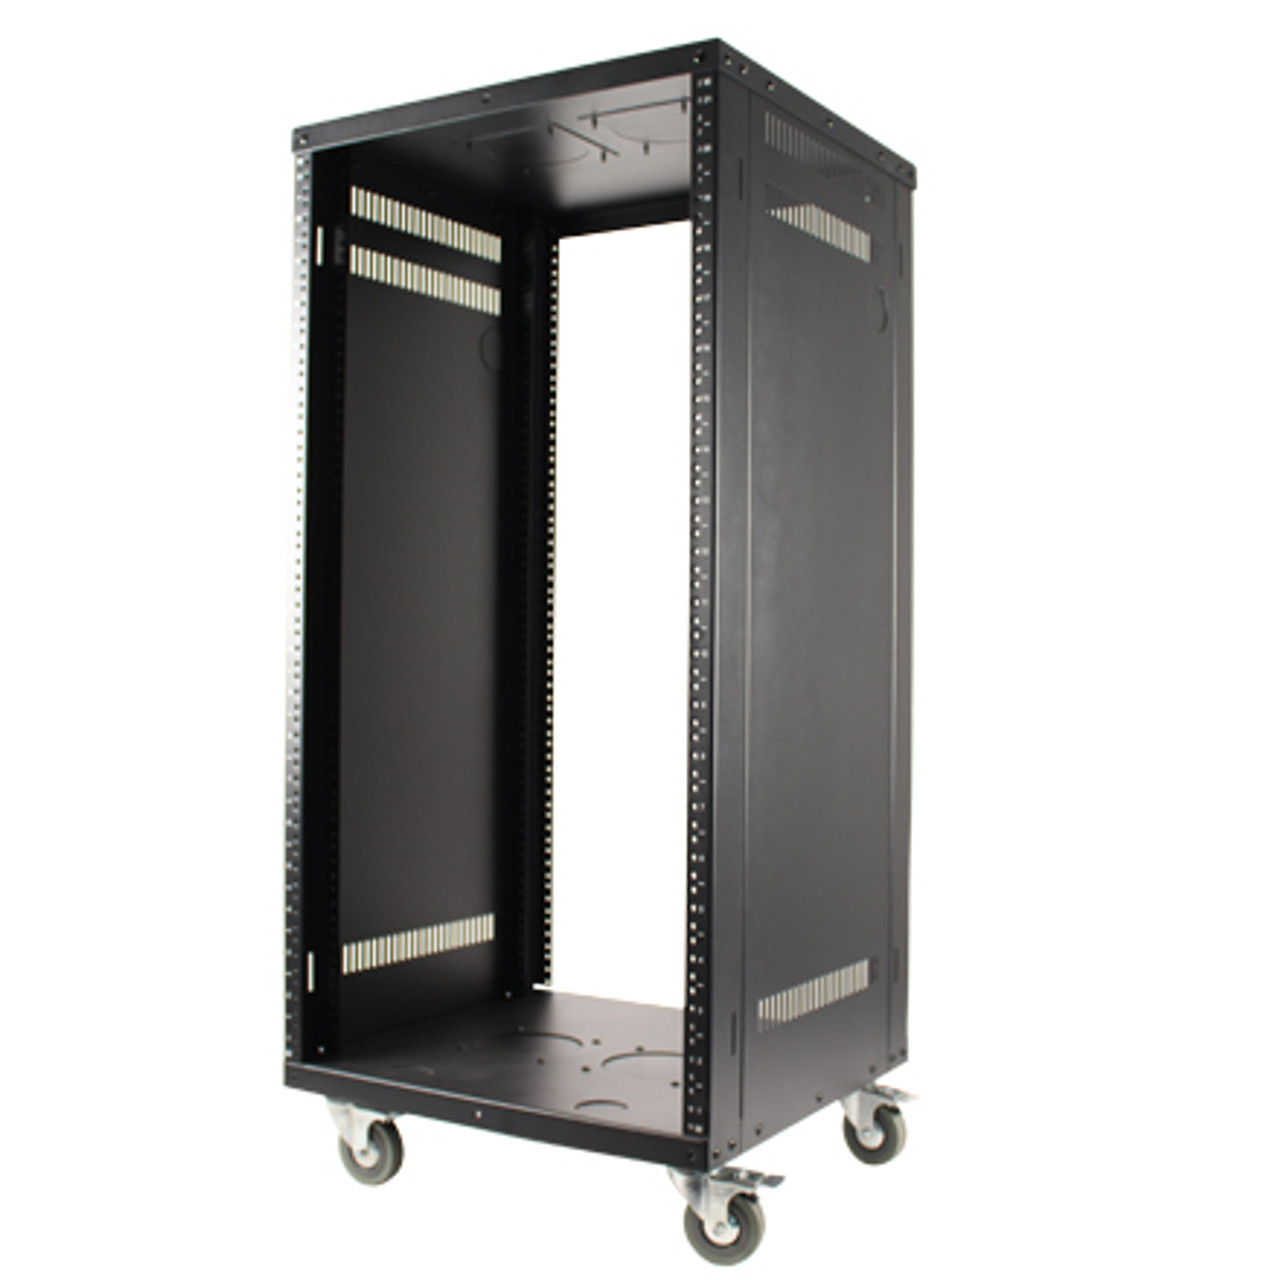 Royal Racks™ 21u Metal Rack